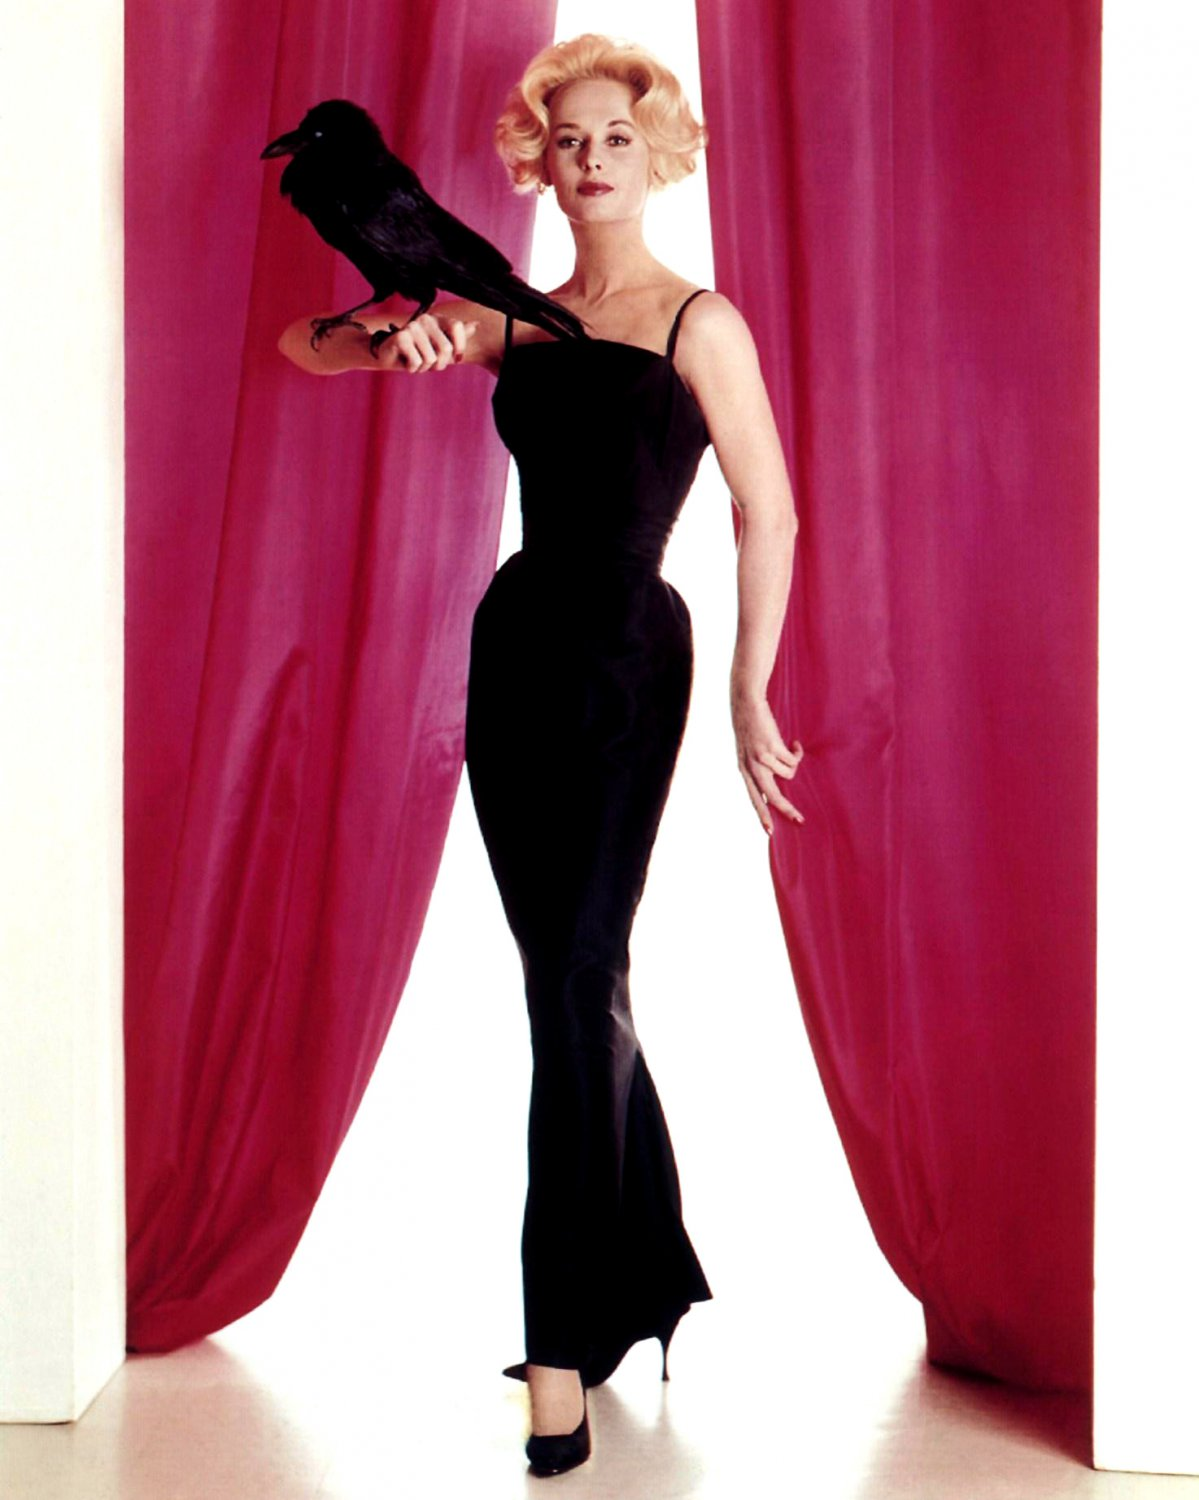 TIPPI HEDREN IN THE 'THE BIRDS' ALFRED HITCHCOCK - 8X10 PUBLICITY PHOTO (NN-145)